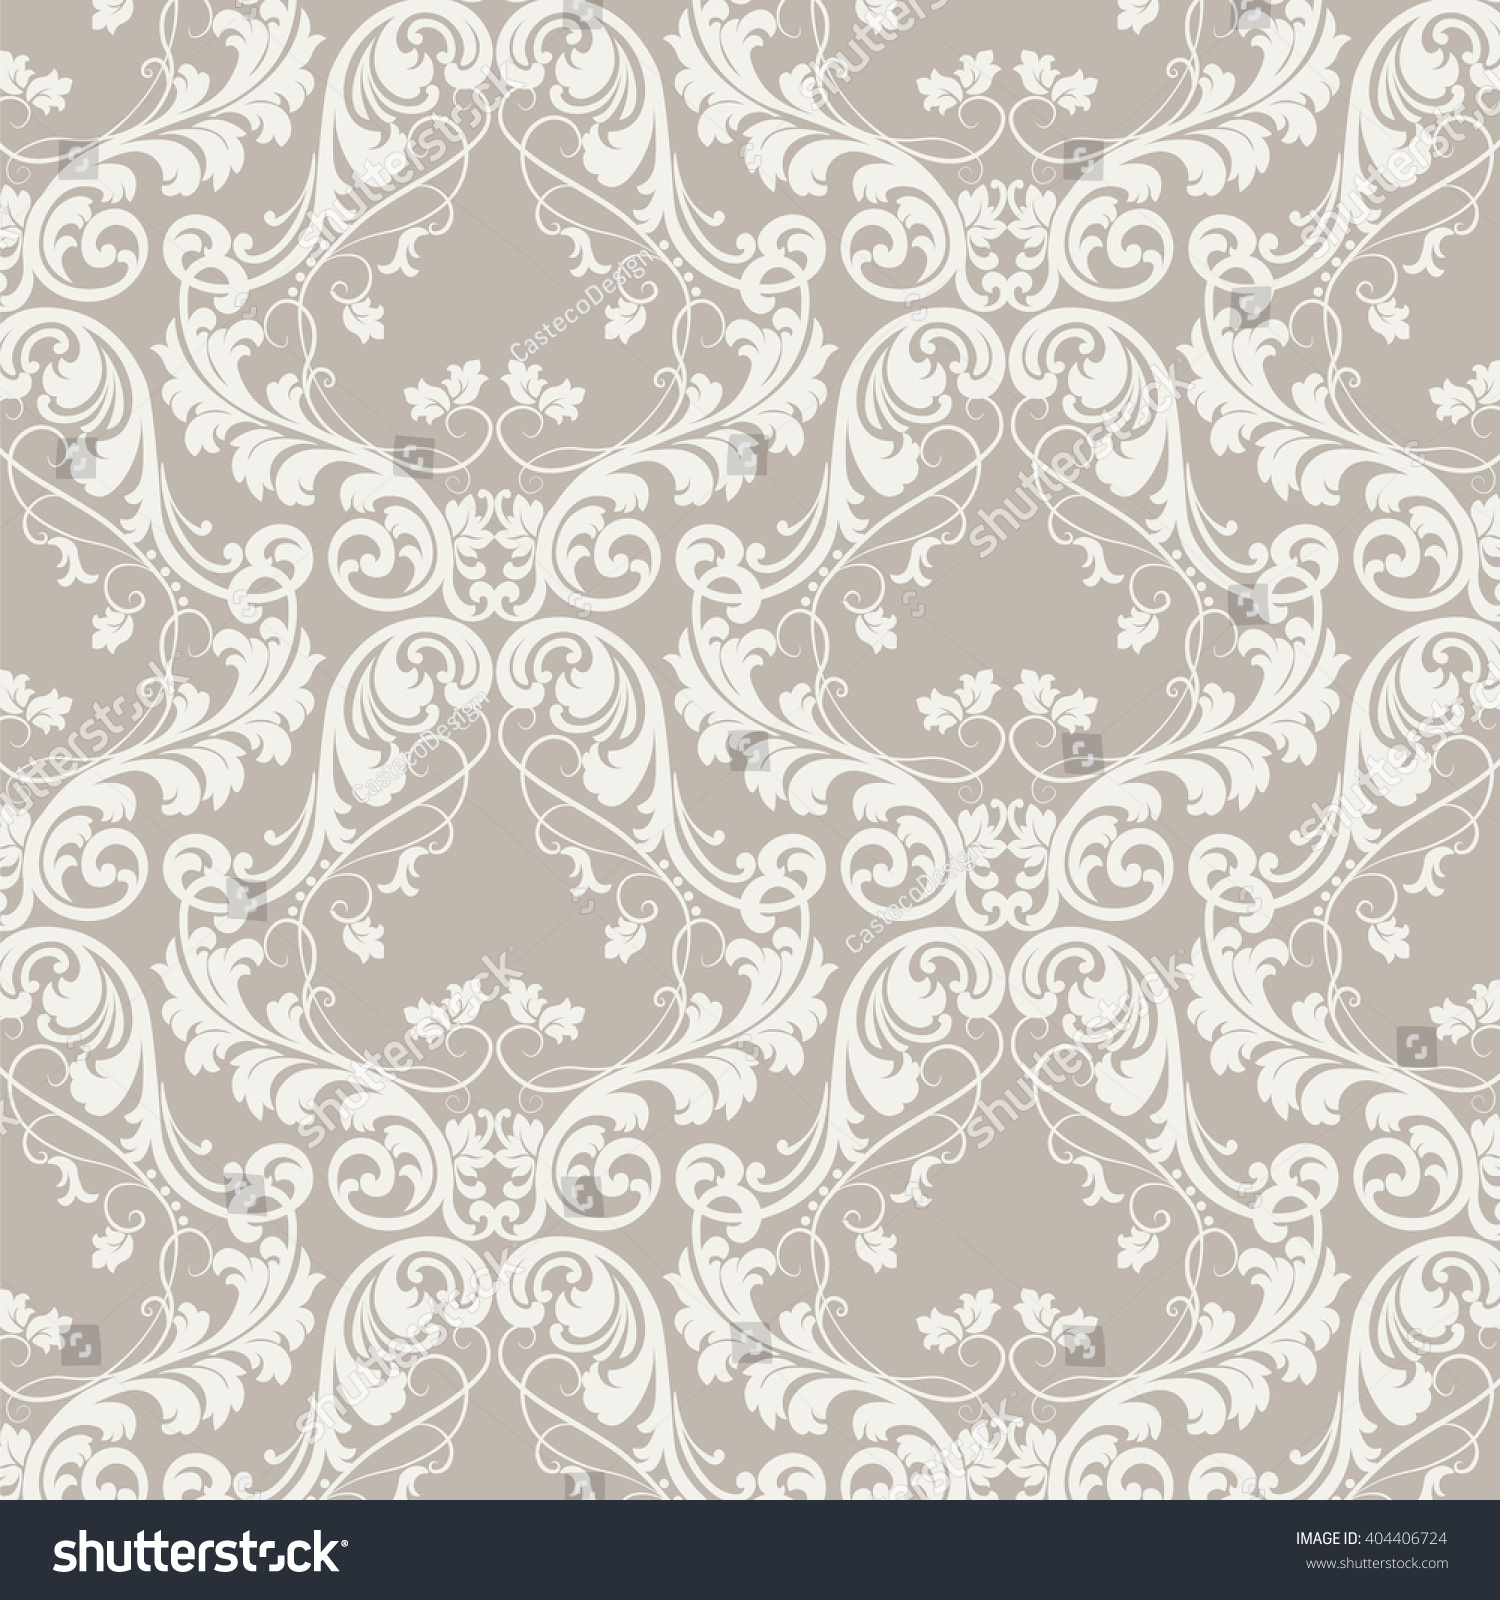 Elegant Cream Hallway With Damask Wallpaper: Royalty-free Vector Baroque Floral Damask Ornament